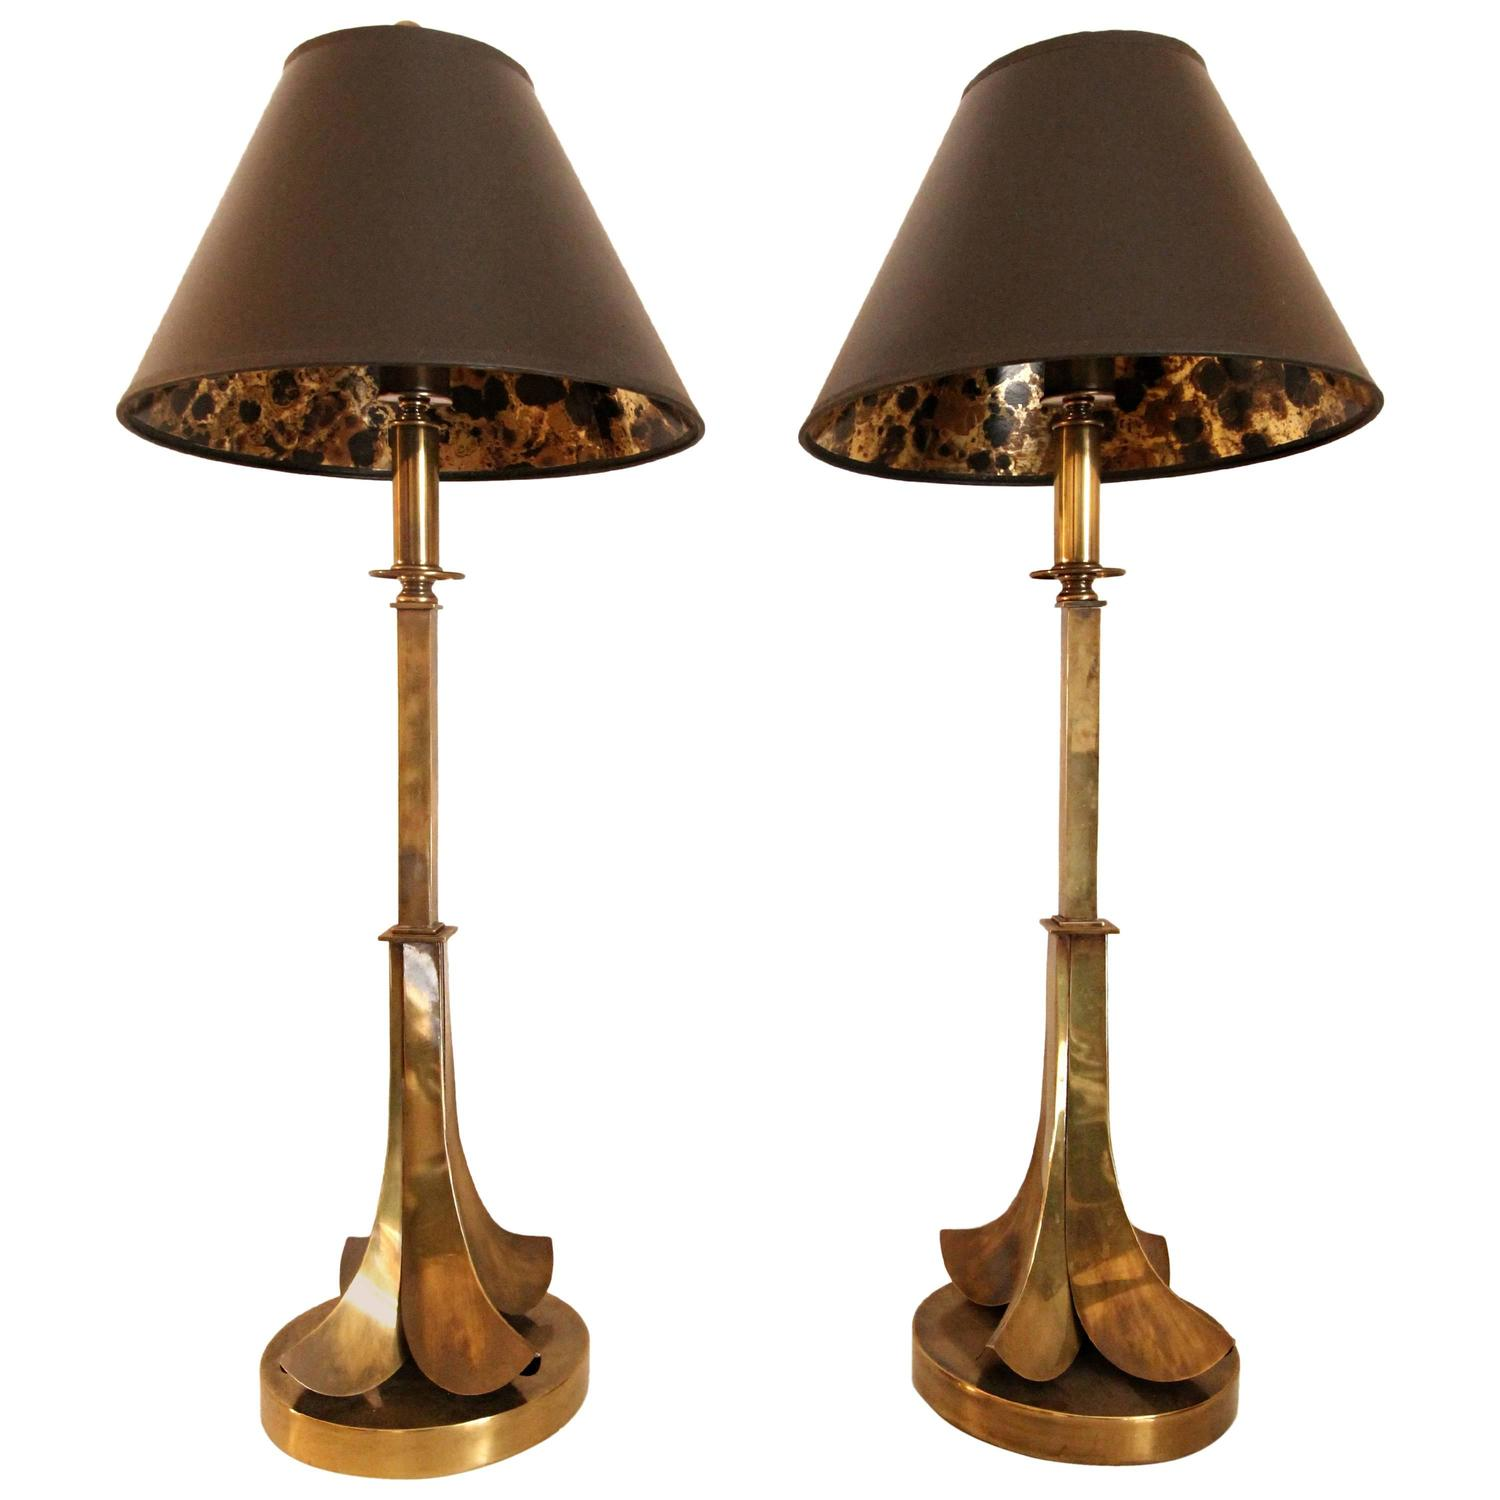 Original Lamps pair of all original aged brass table lampshart associates for